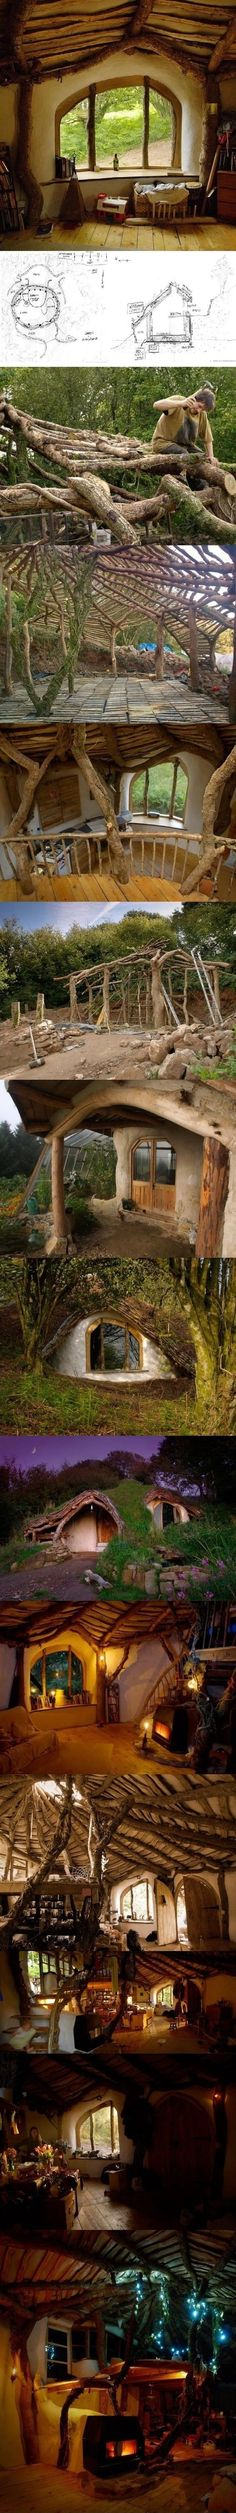 Construction de la maison de hobbit écologique - How to build a hobbit house